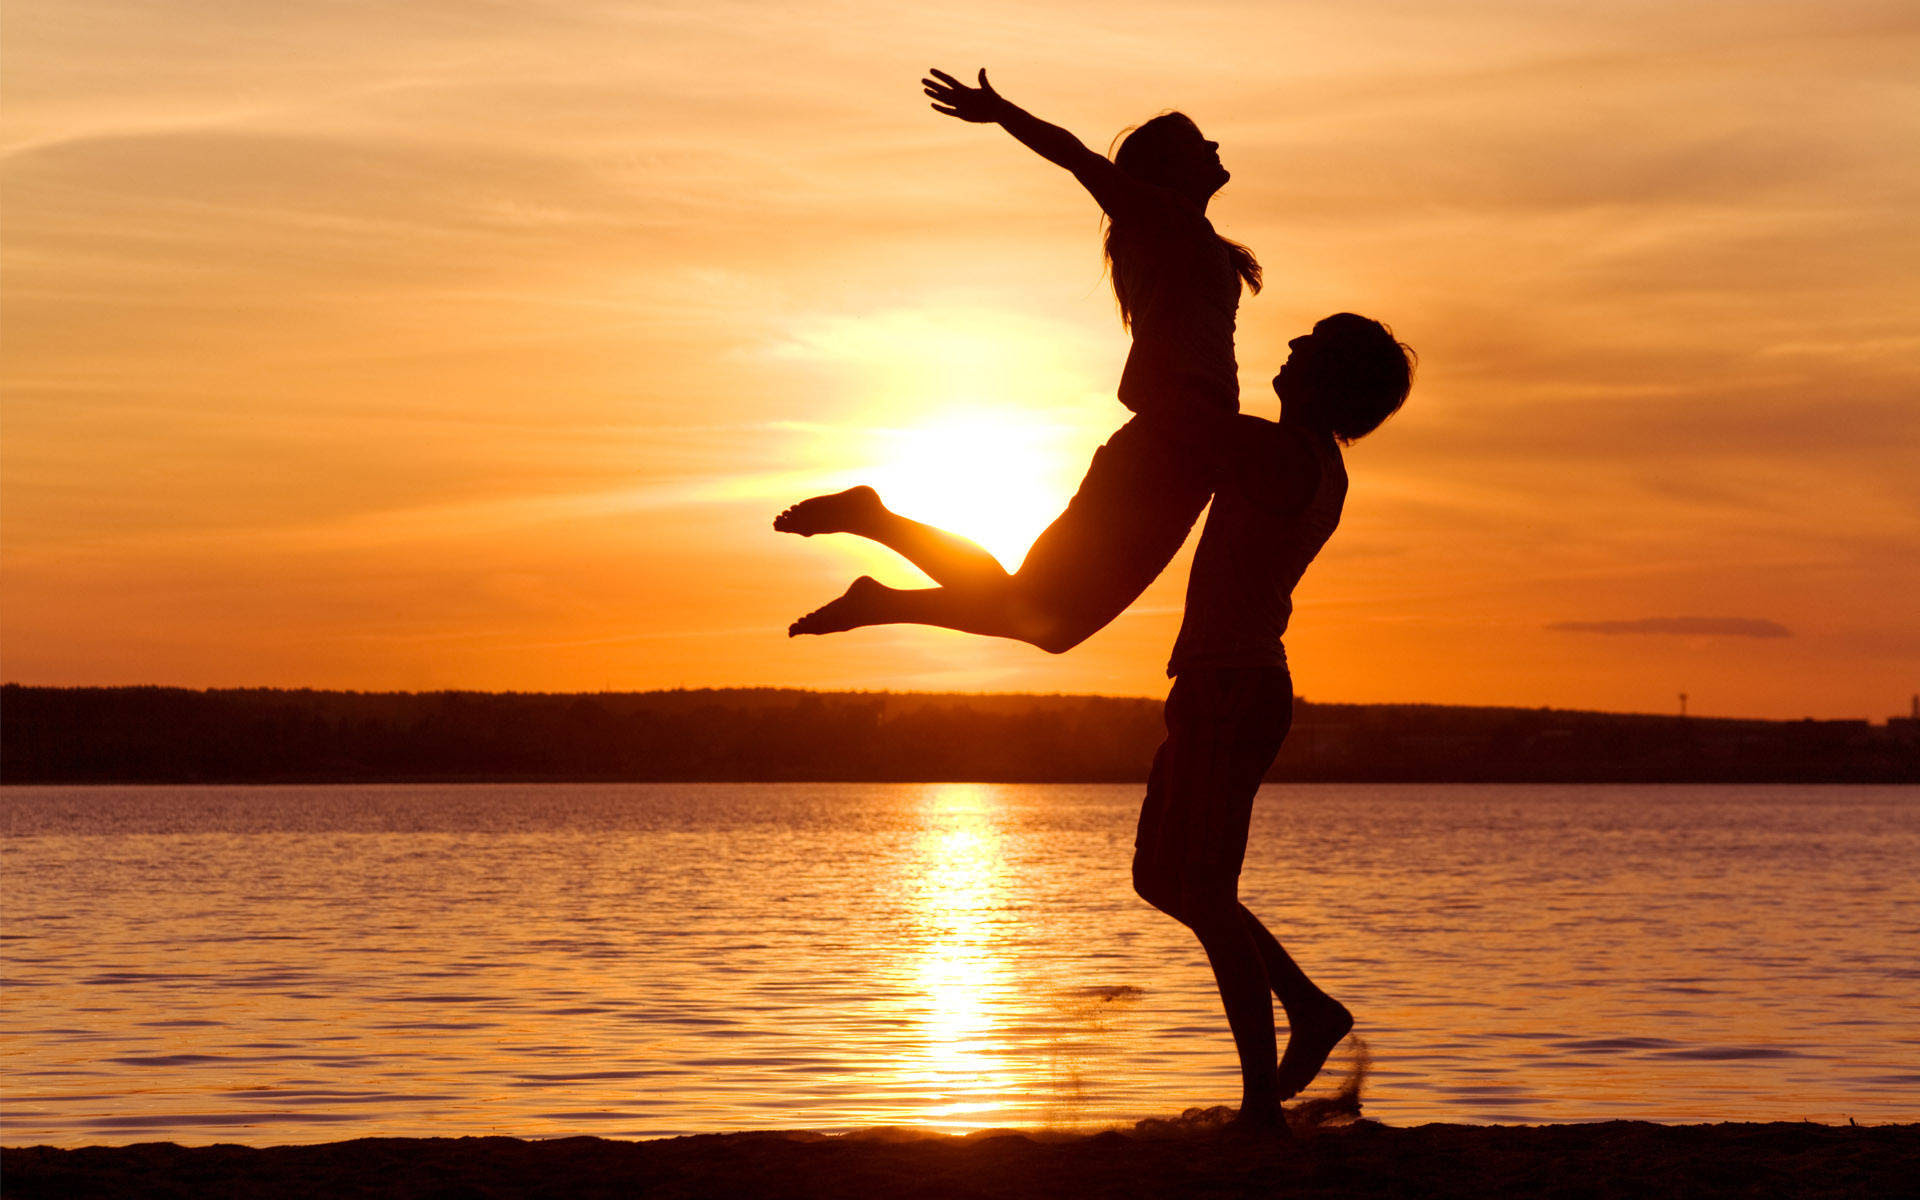 Gambar dari sini http://www.letstalkdatingonline.com/home/wp-content/uploads/2013/02/love-man-woman-silhouette-sun-sunset-sea-lake-beachother1.jpg